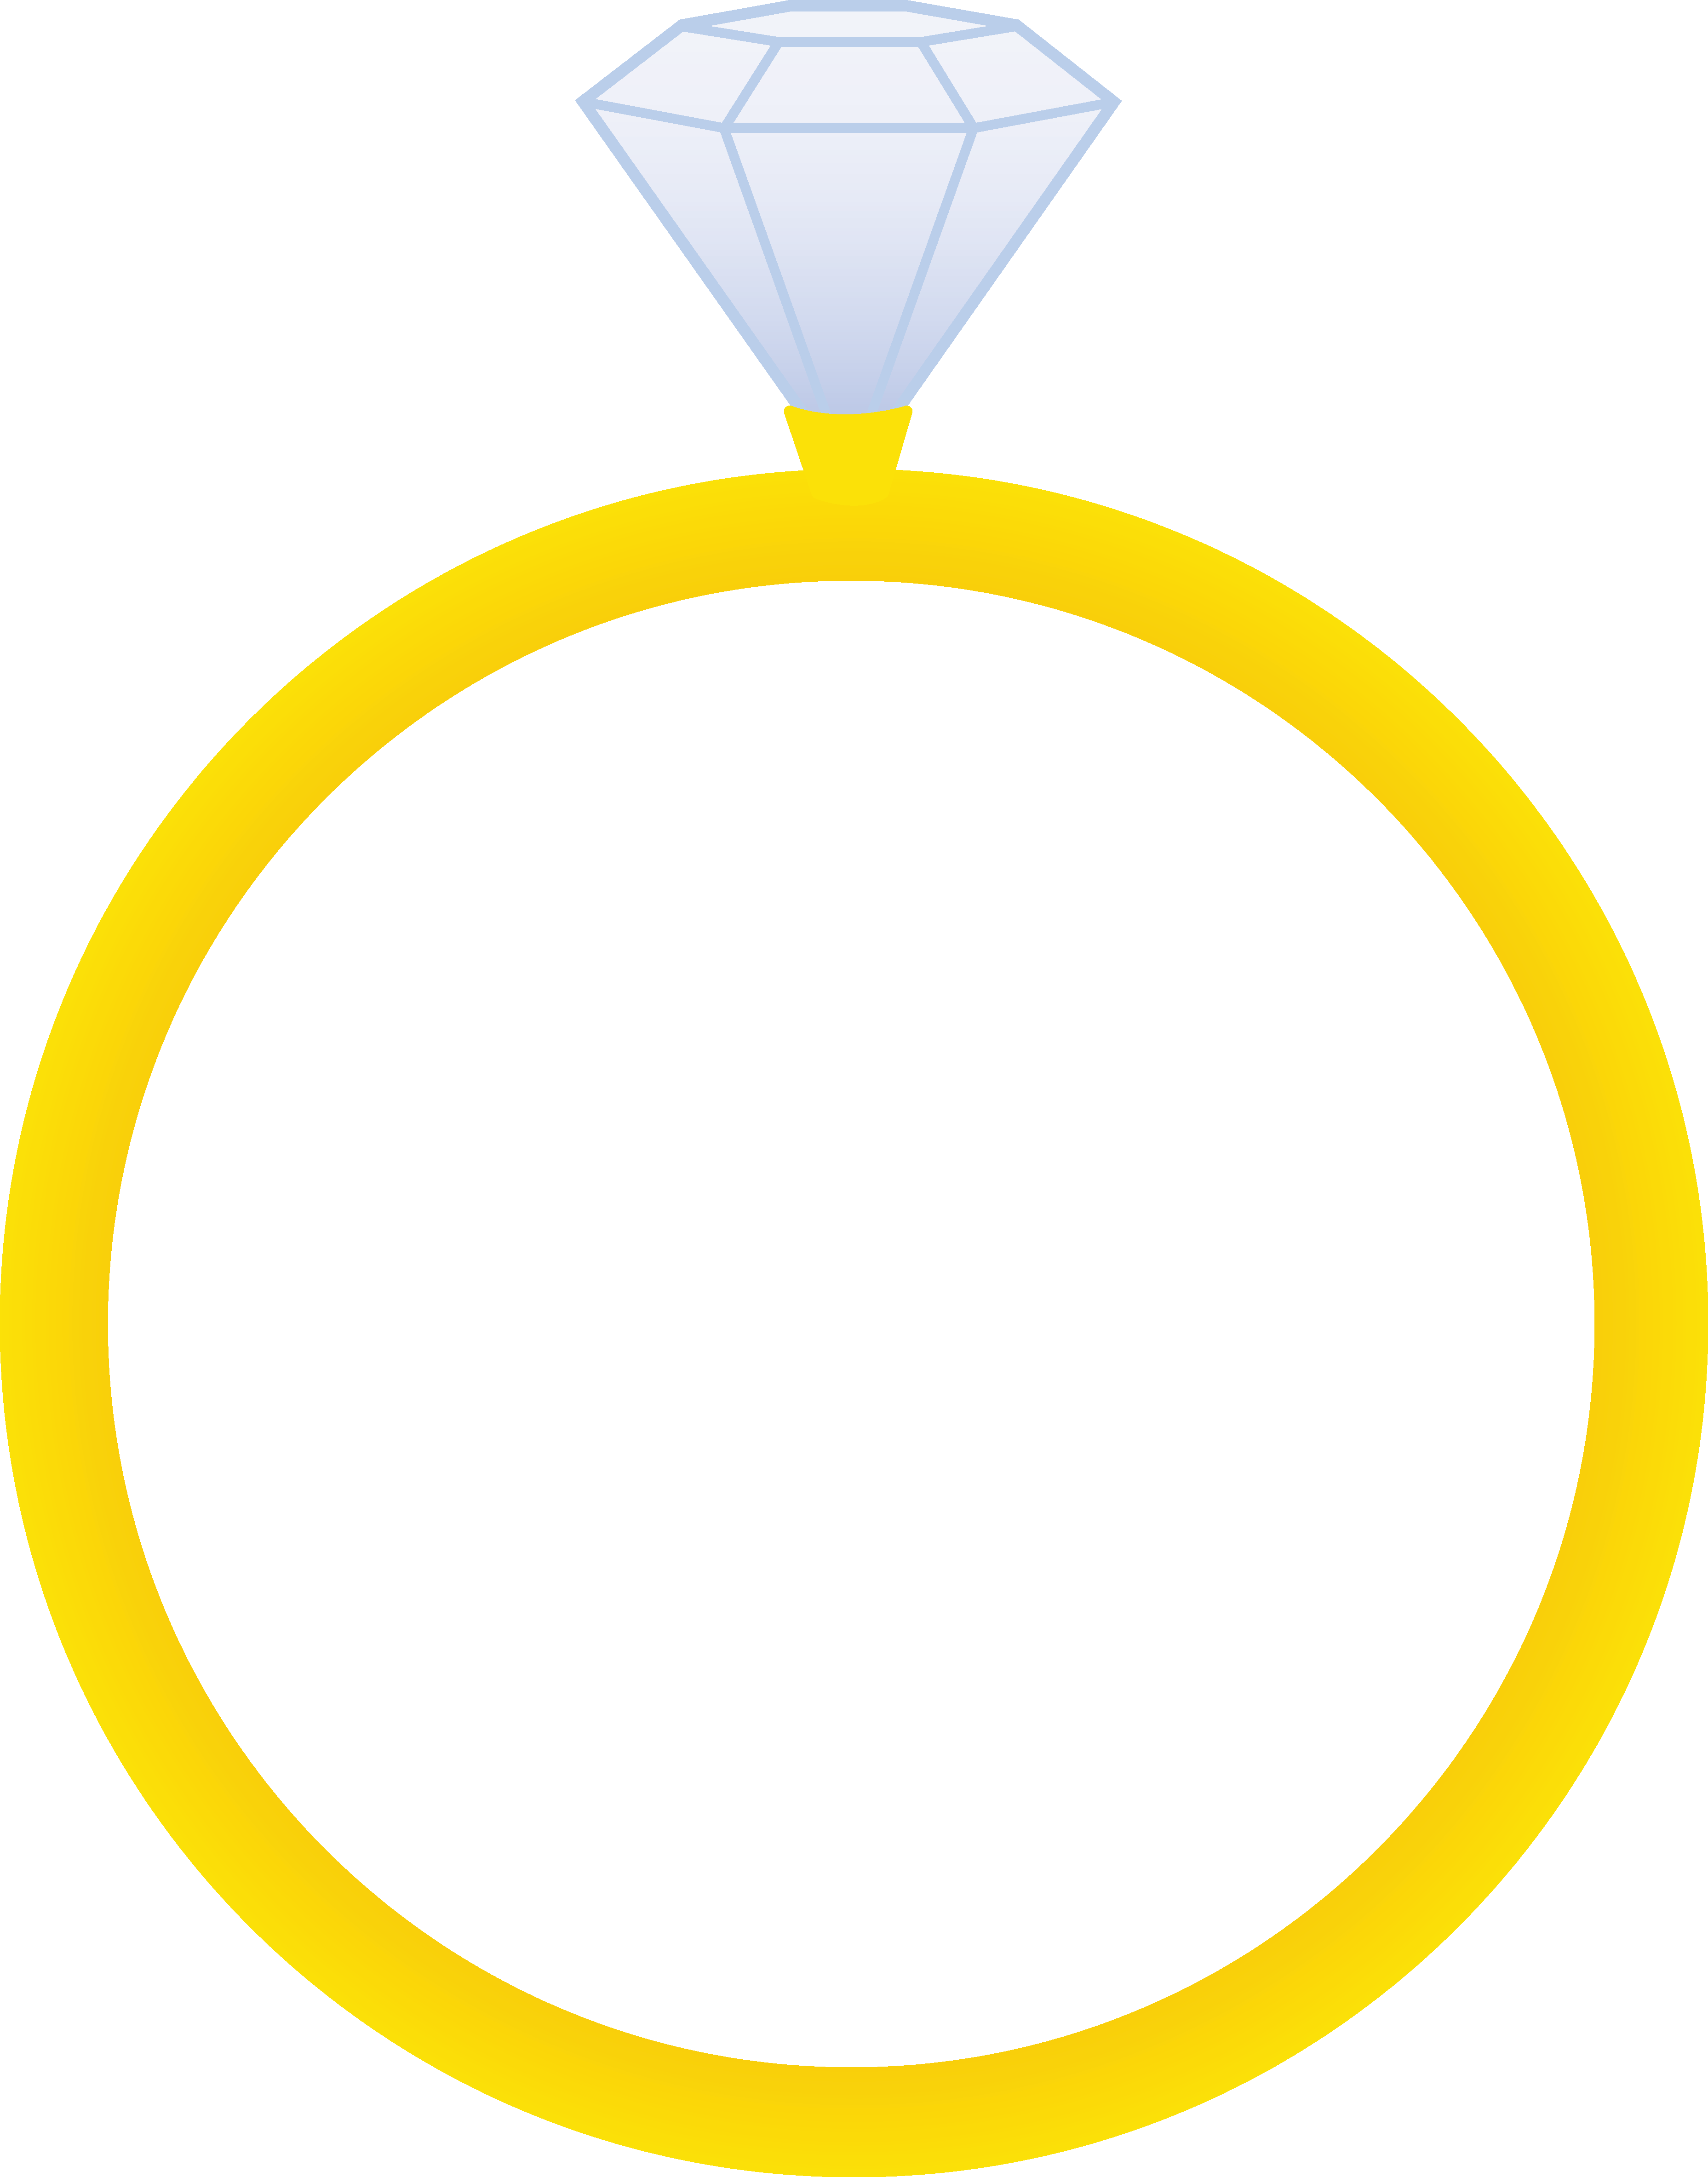 Ring Clipart HD